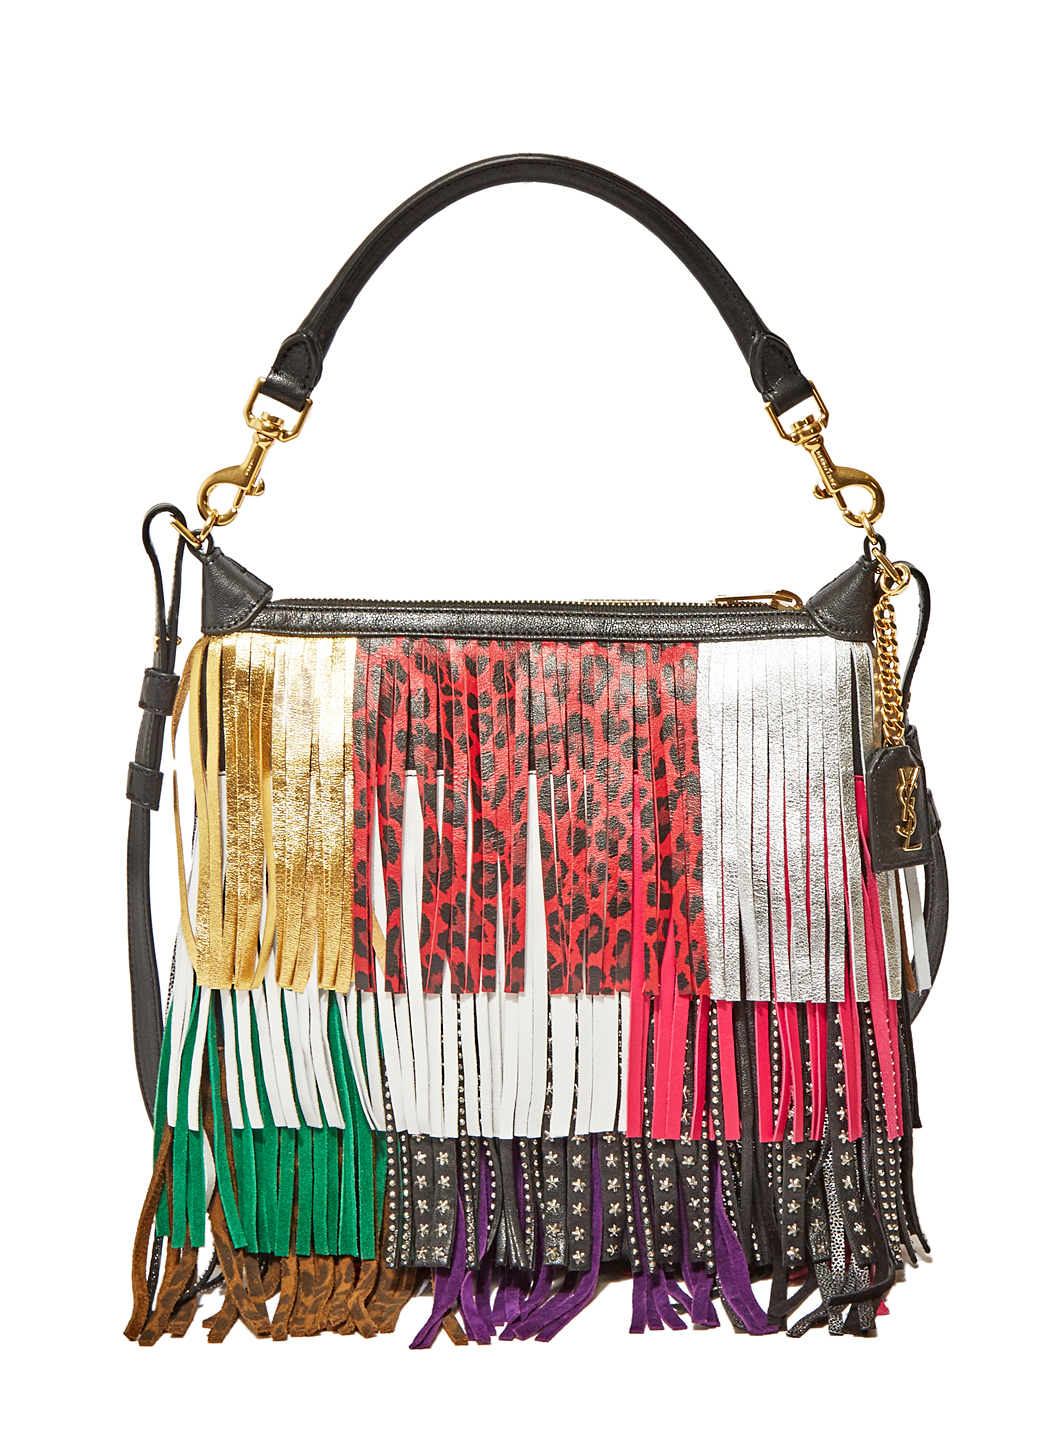 Emmanuelle Small Leather Fringe Hobo Bag Black Multicolor